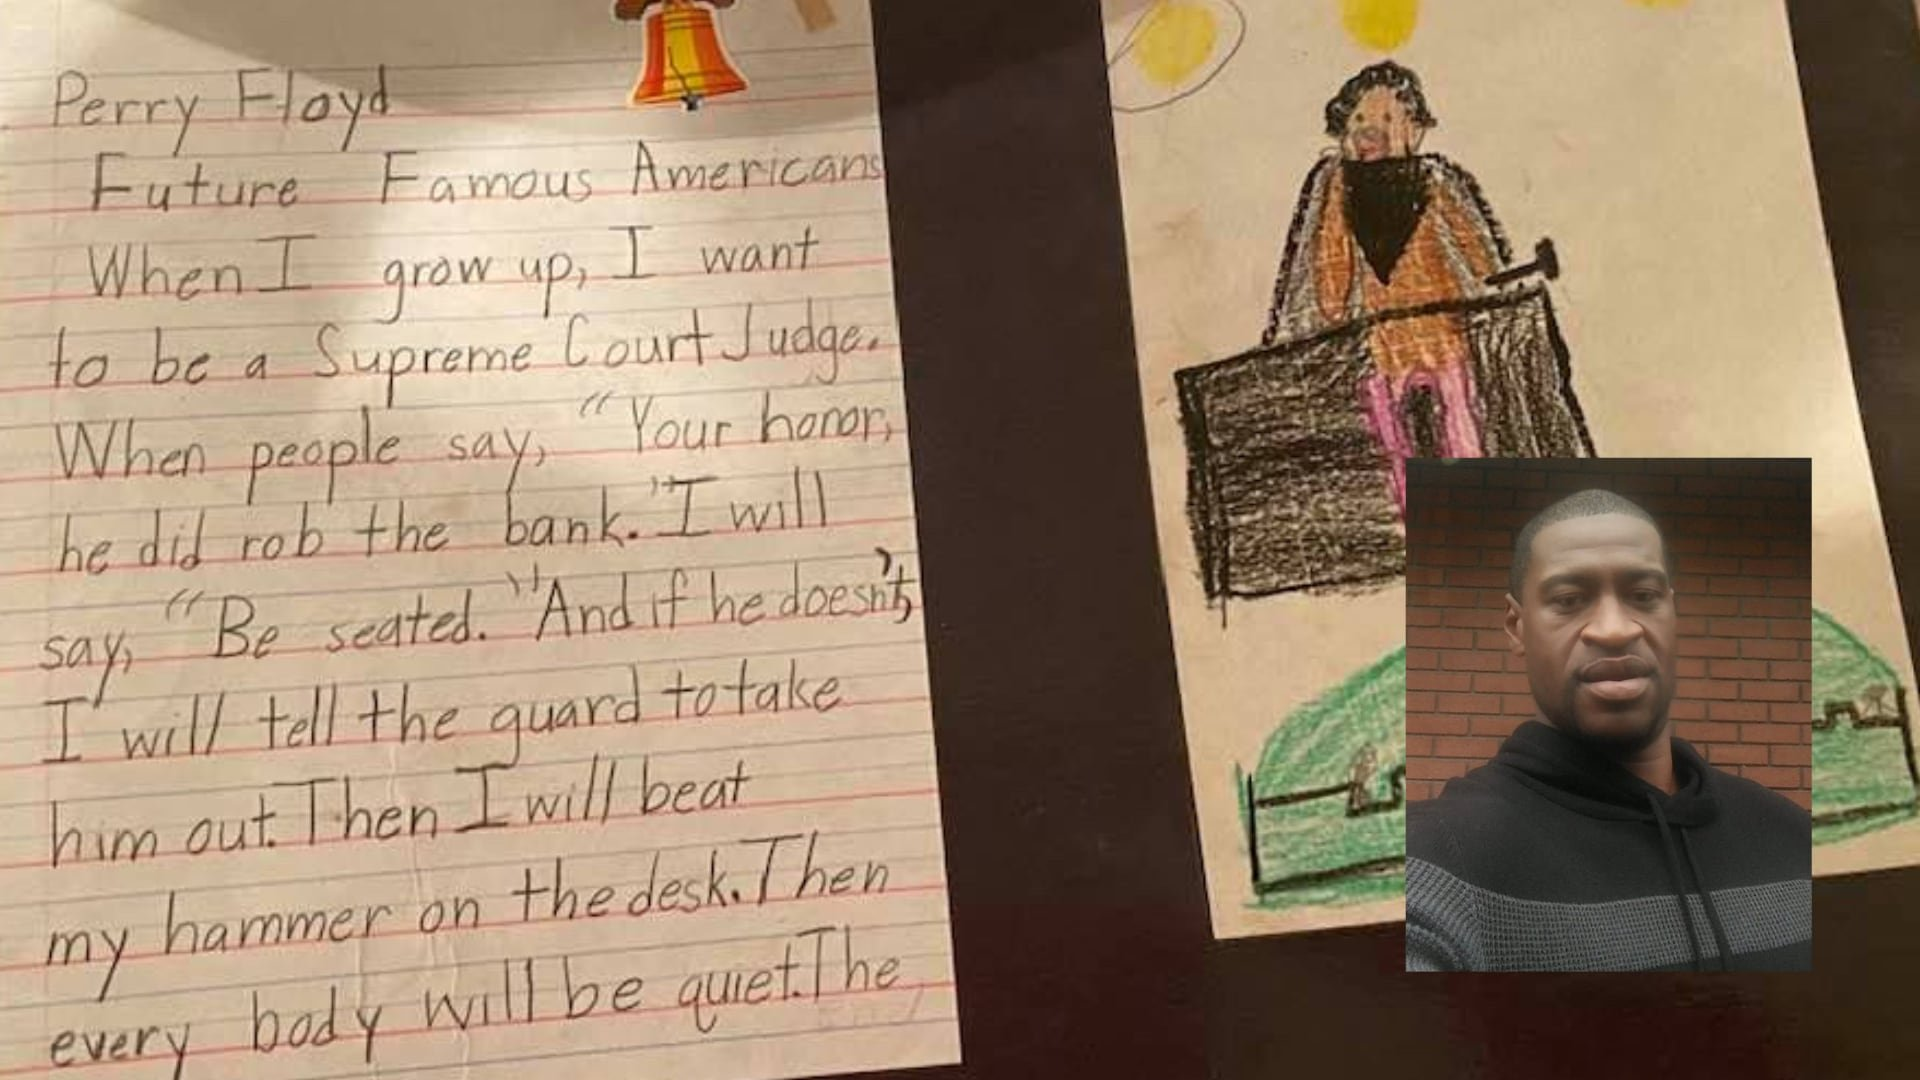 George Floyd's 2nd grade essay reveals he wanted to be a Supreme Court justice